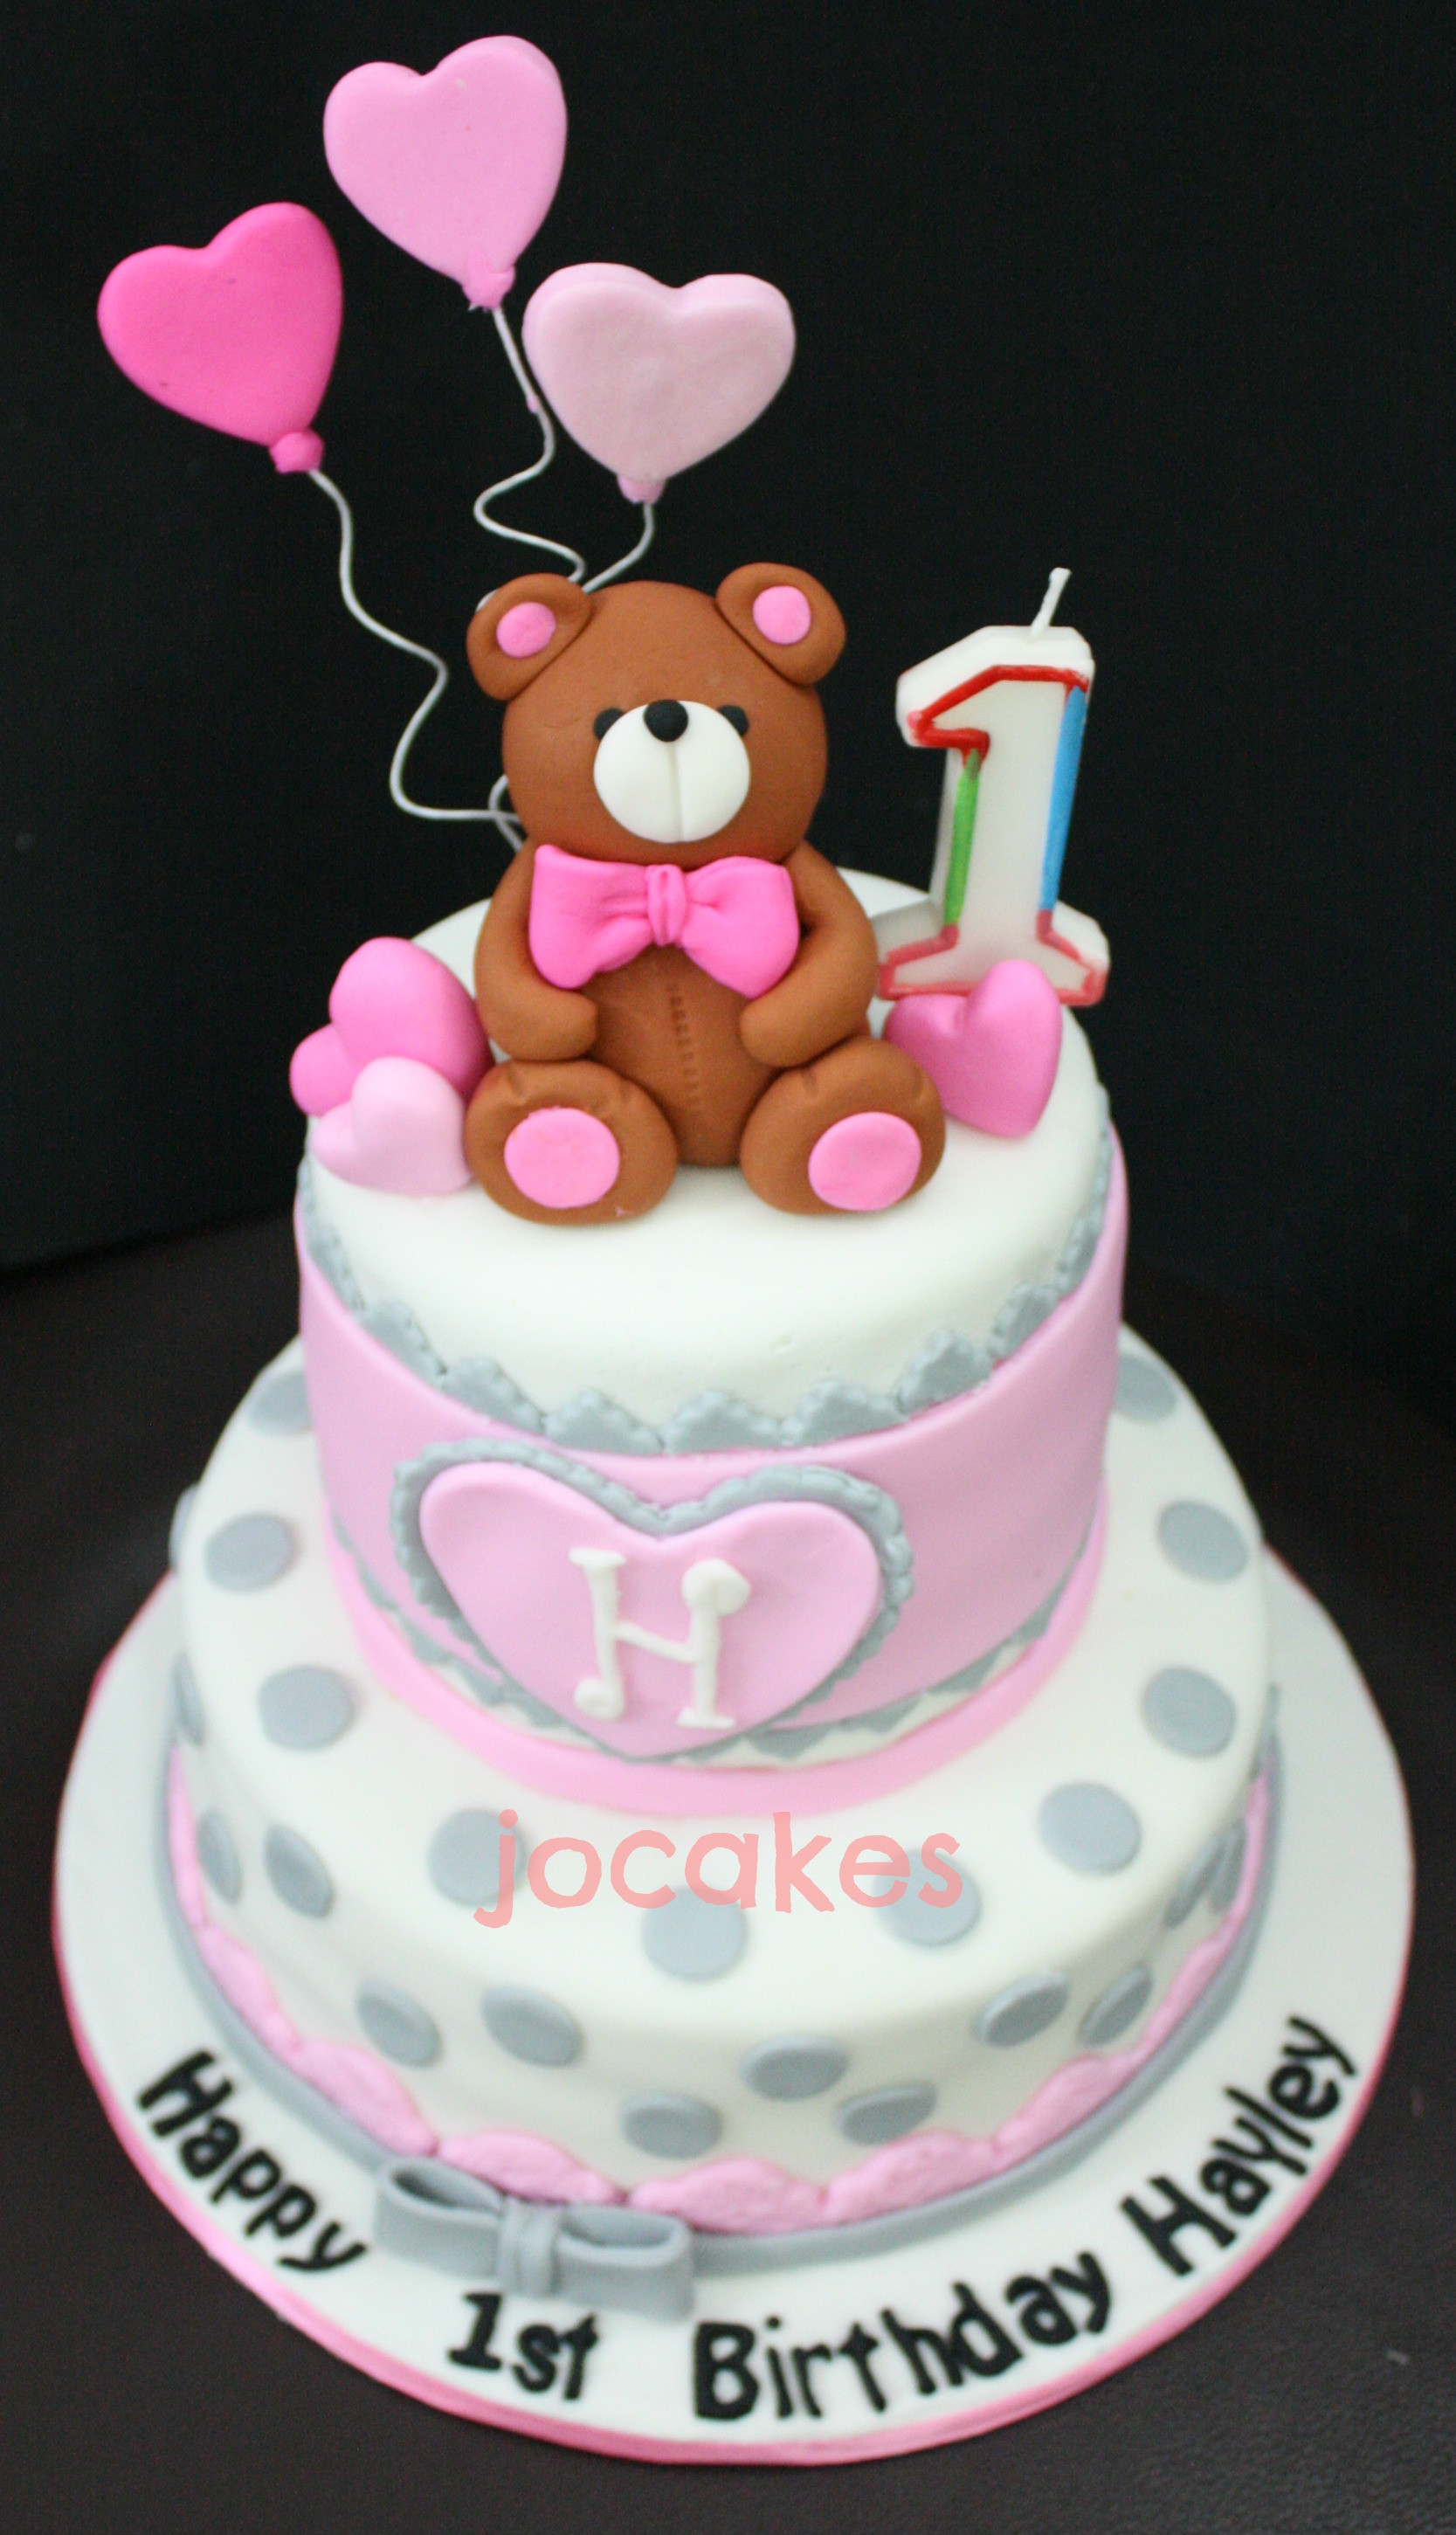 Best ideas about 1 Year Old Birthday Cake . Save or Pin 1 year old birthday cake Now.